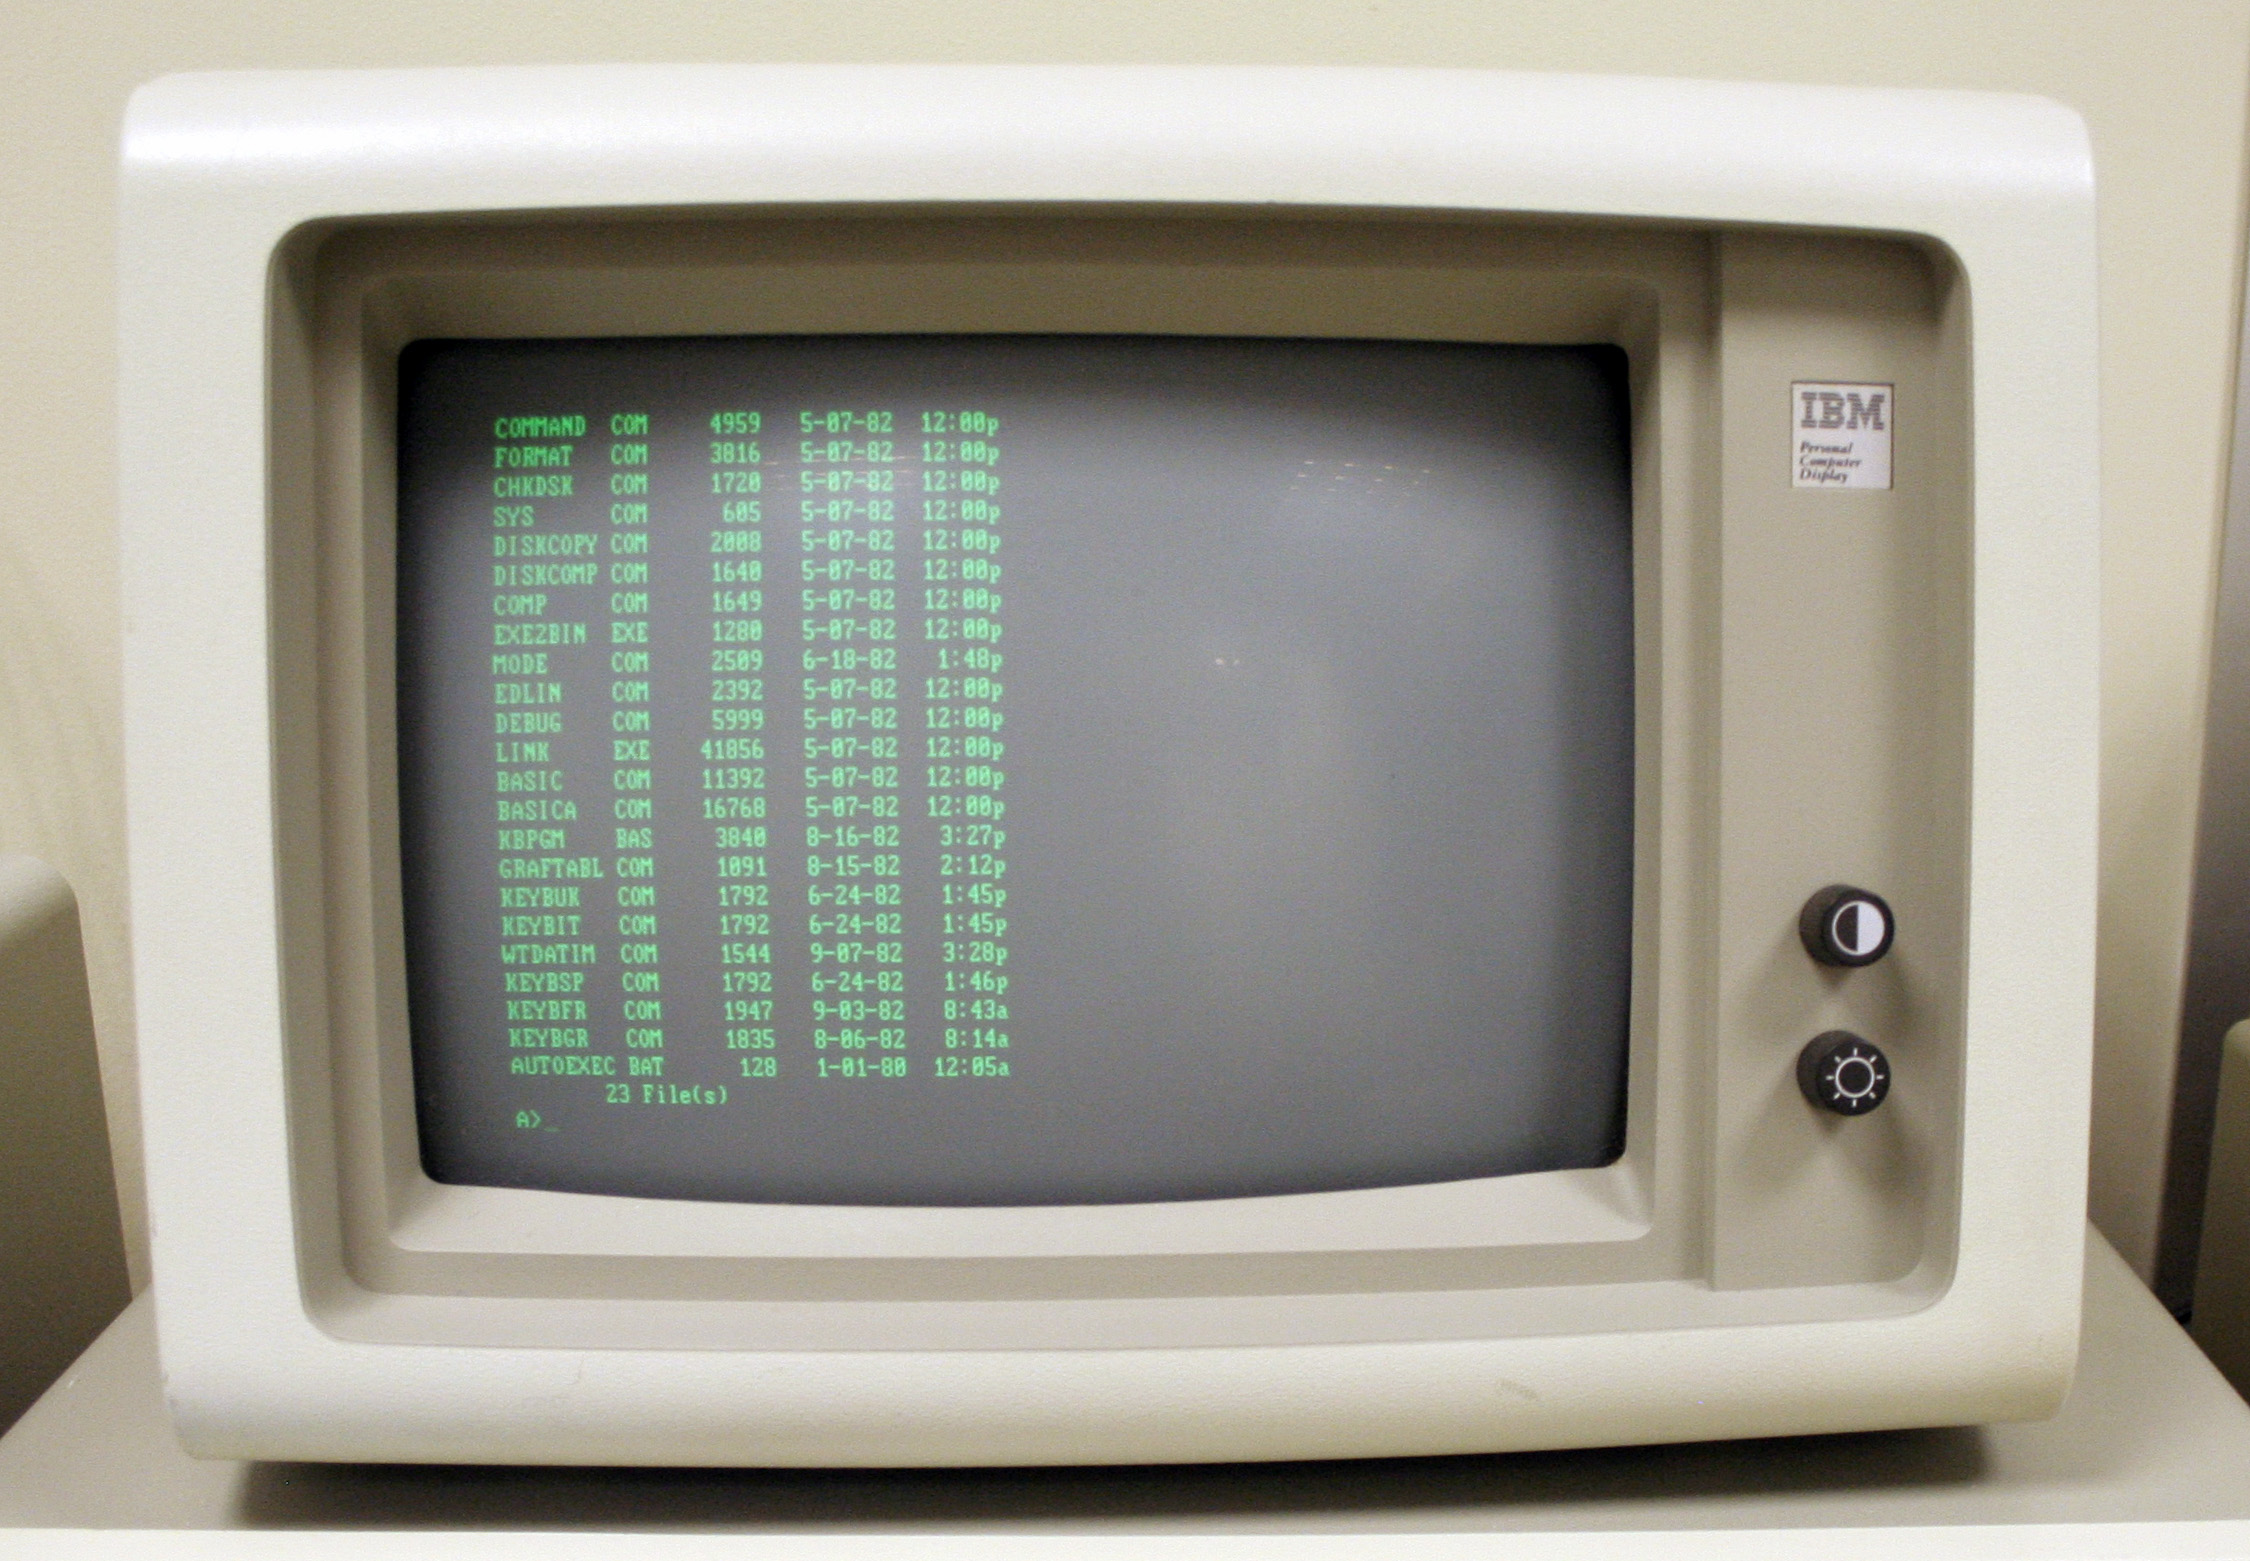 DOS running on an IBM PC 5150 with a monochrome green screen at Hursley